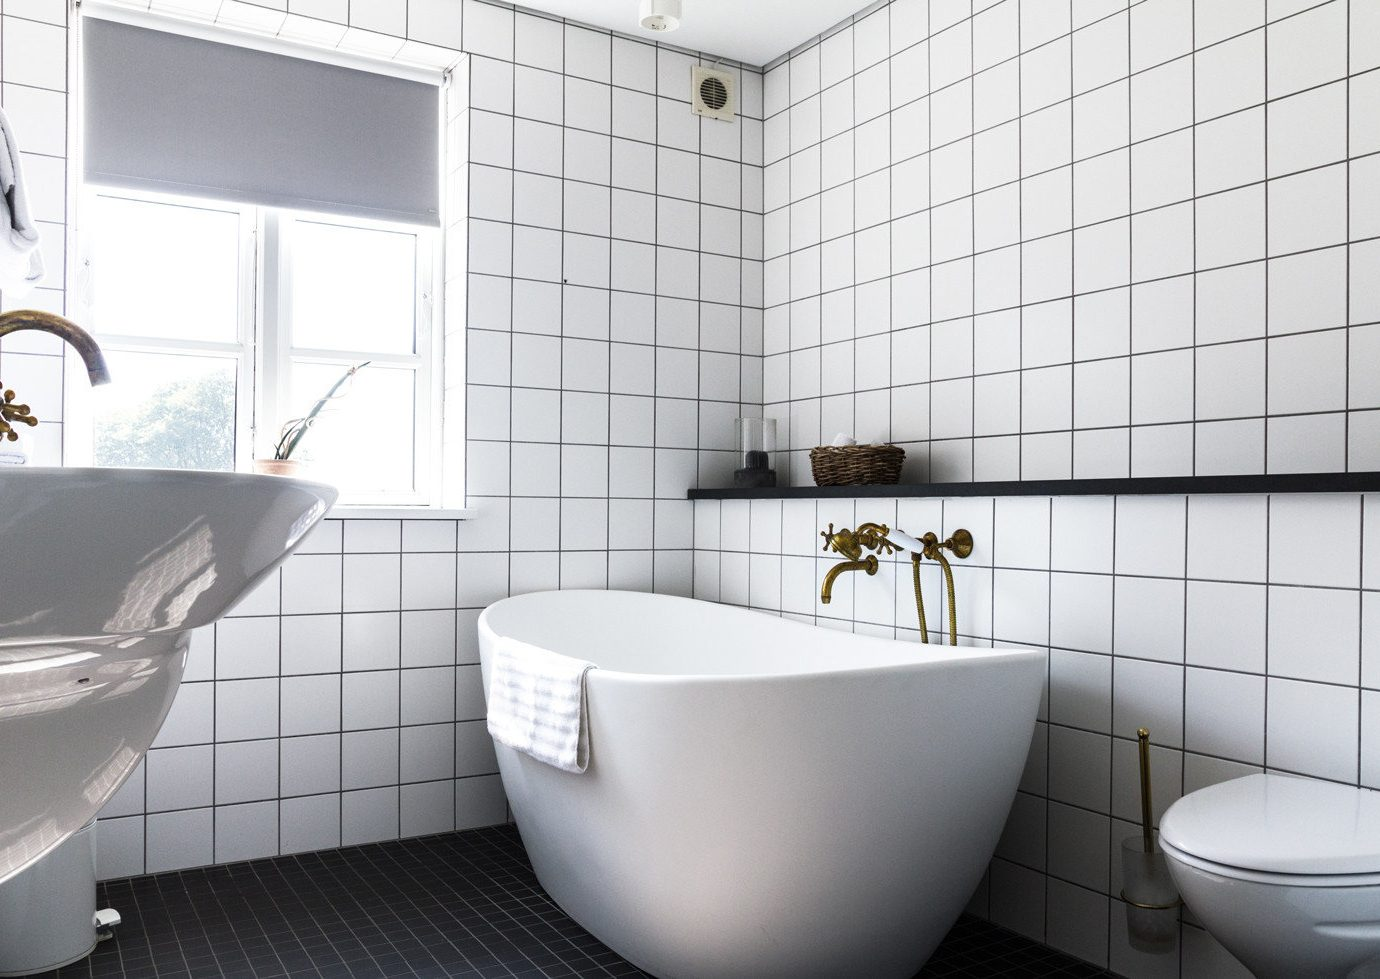 Denmark Finland Hotels Landmarks Luxury Travel Sweden indoor bathroom wall toilet room tile tap plumbing fixture bidet interior design ceramic toilet seat floor product design bathroom accessory angle bathroom sink product flooring sink tiled